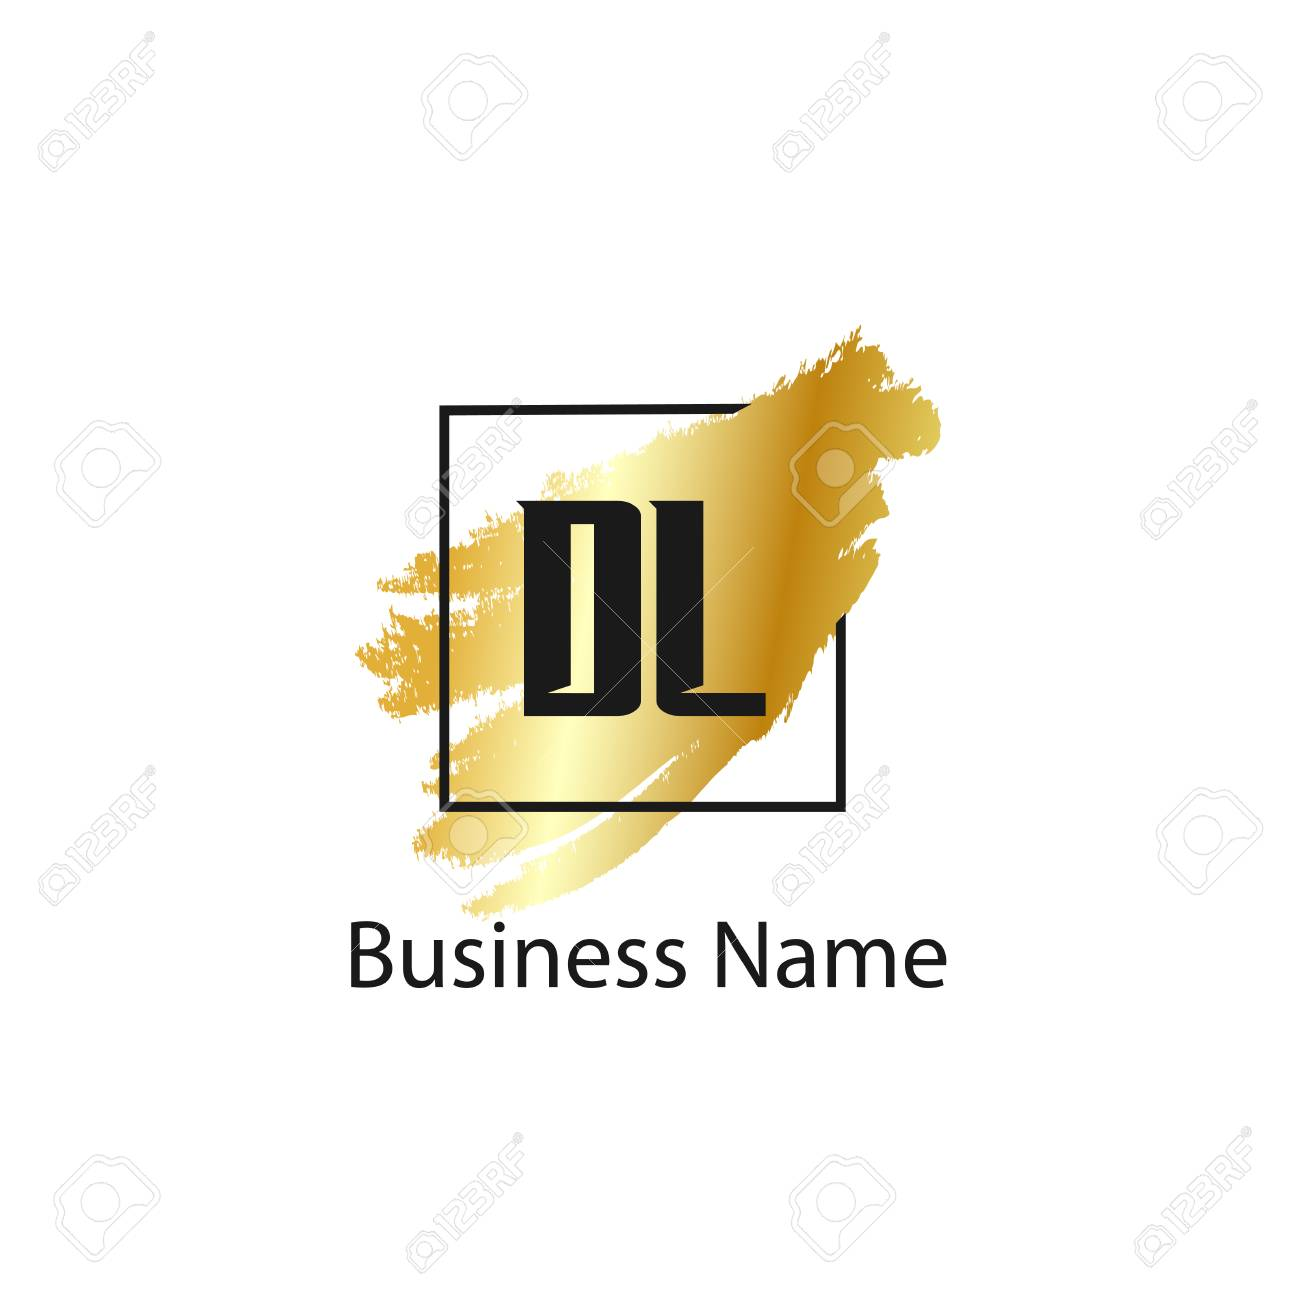 Initial Letter Dl Logo Template Design Royalty Free Cliparts Vectors And Stock Illustration Image 110732558